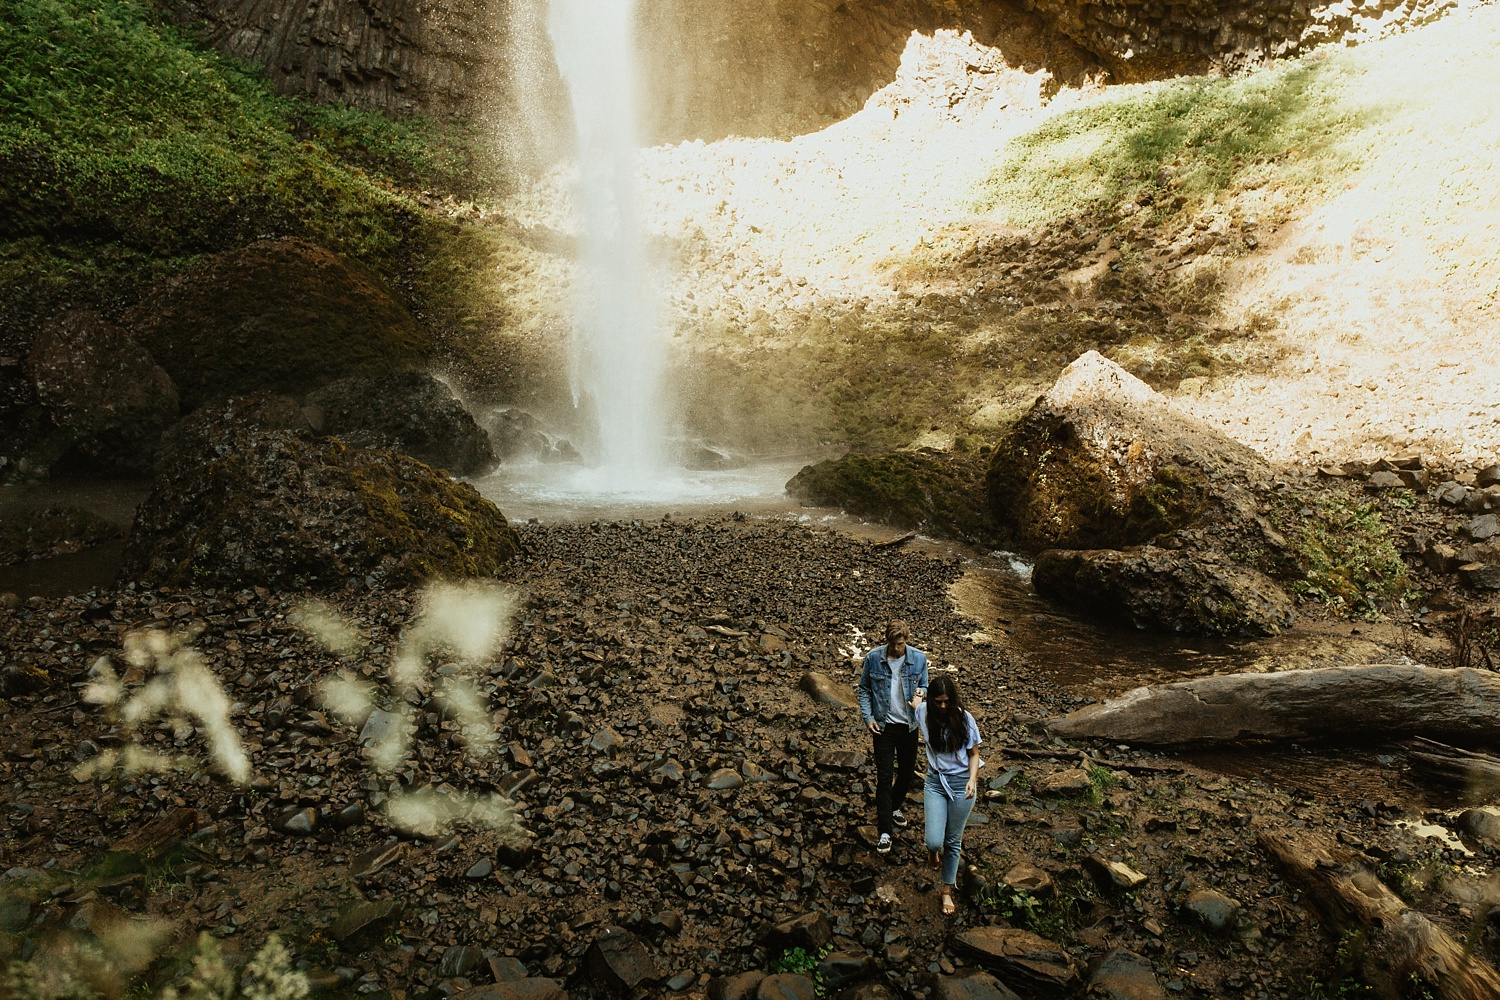 adventurous-mountain-engagement-session-banff-alberta-canada-calgary-edmonton-lethbridge-destination-wedding-photographer-havilah-heger-waterfall-banff-session-couples-photography_14